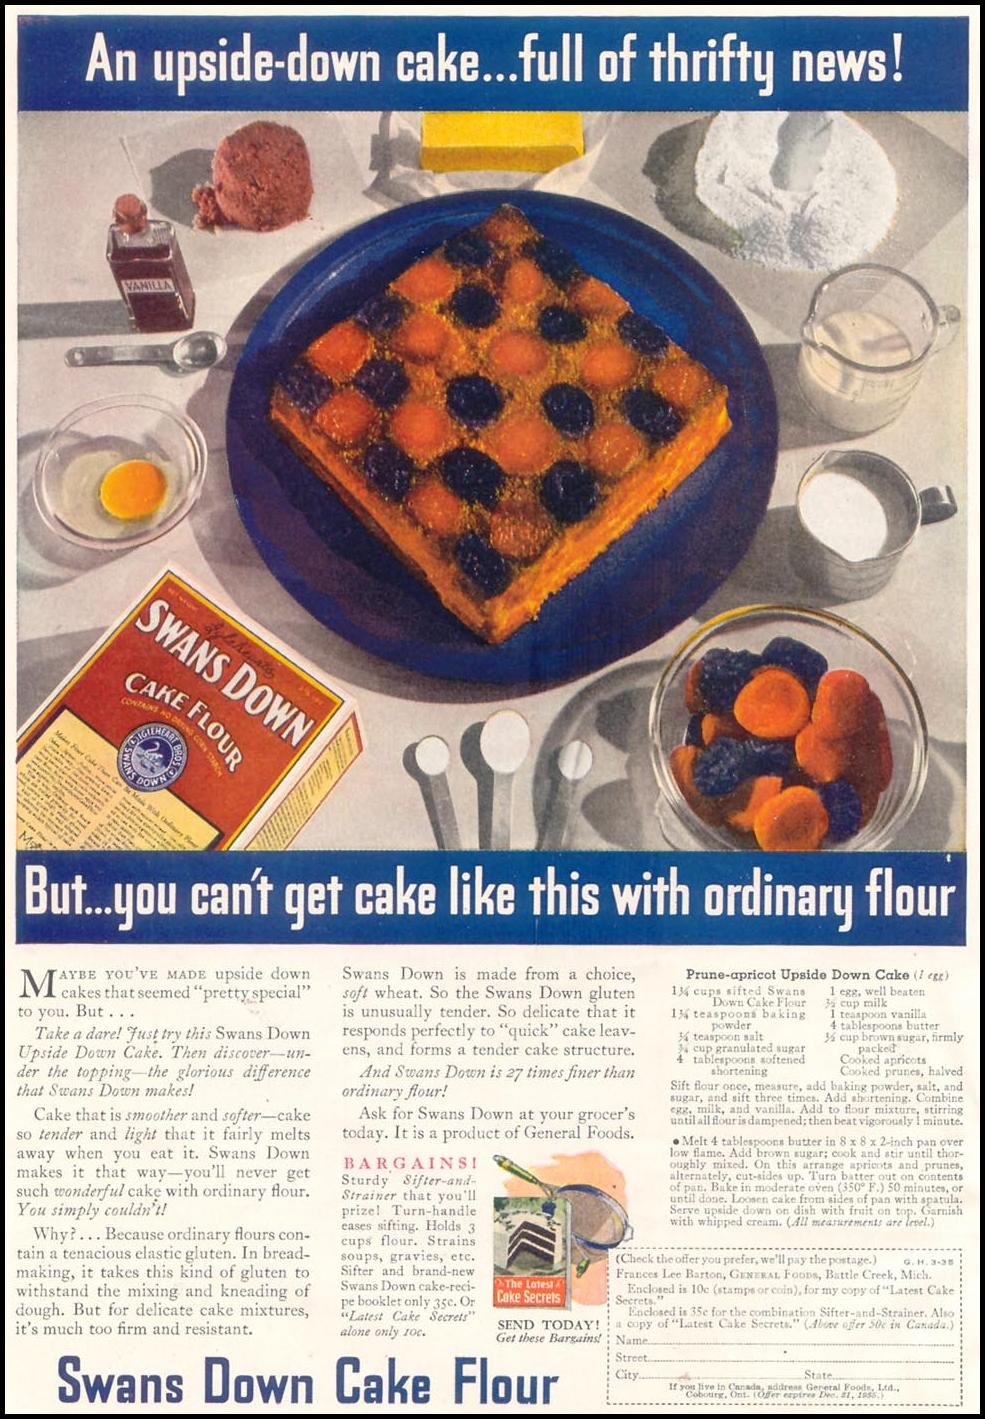 SWANS DOWN CAKE FLOUR